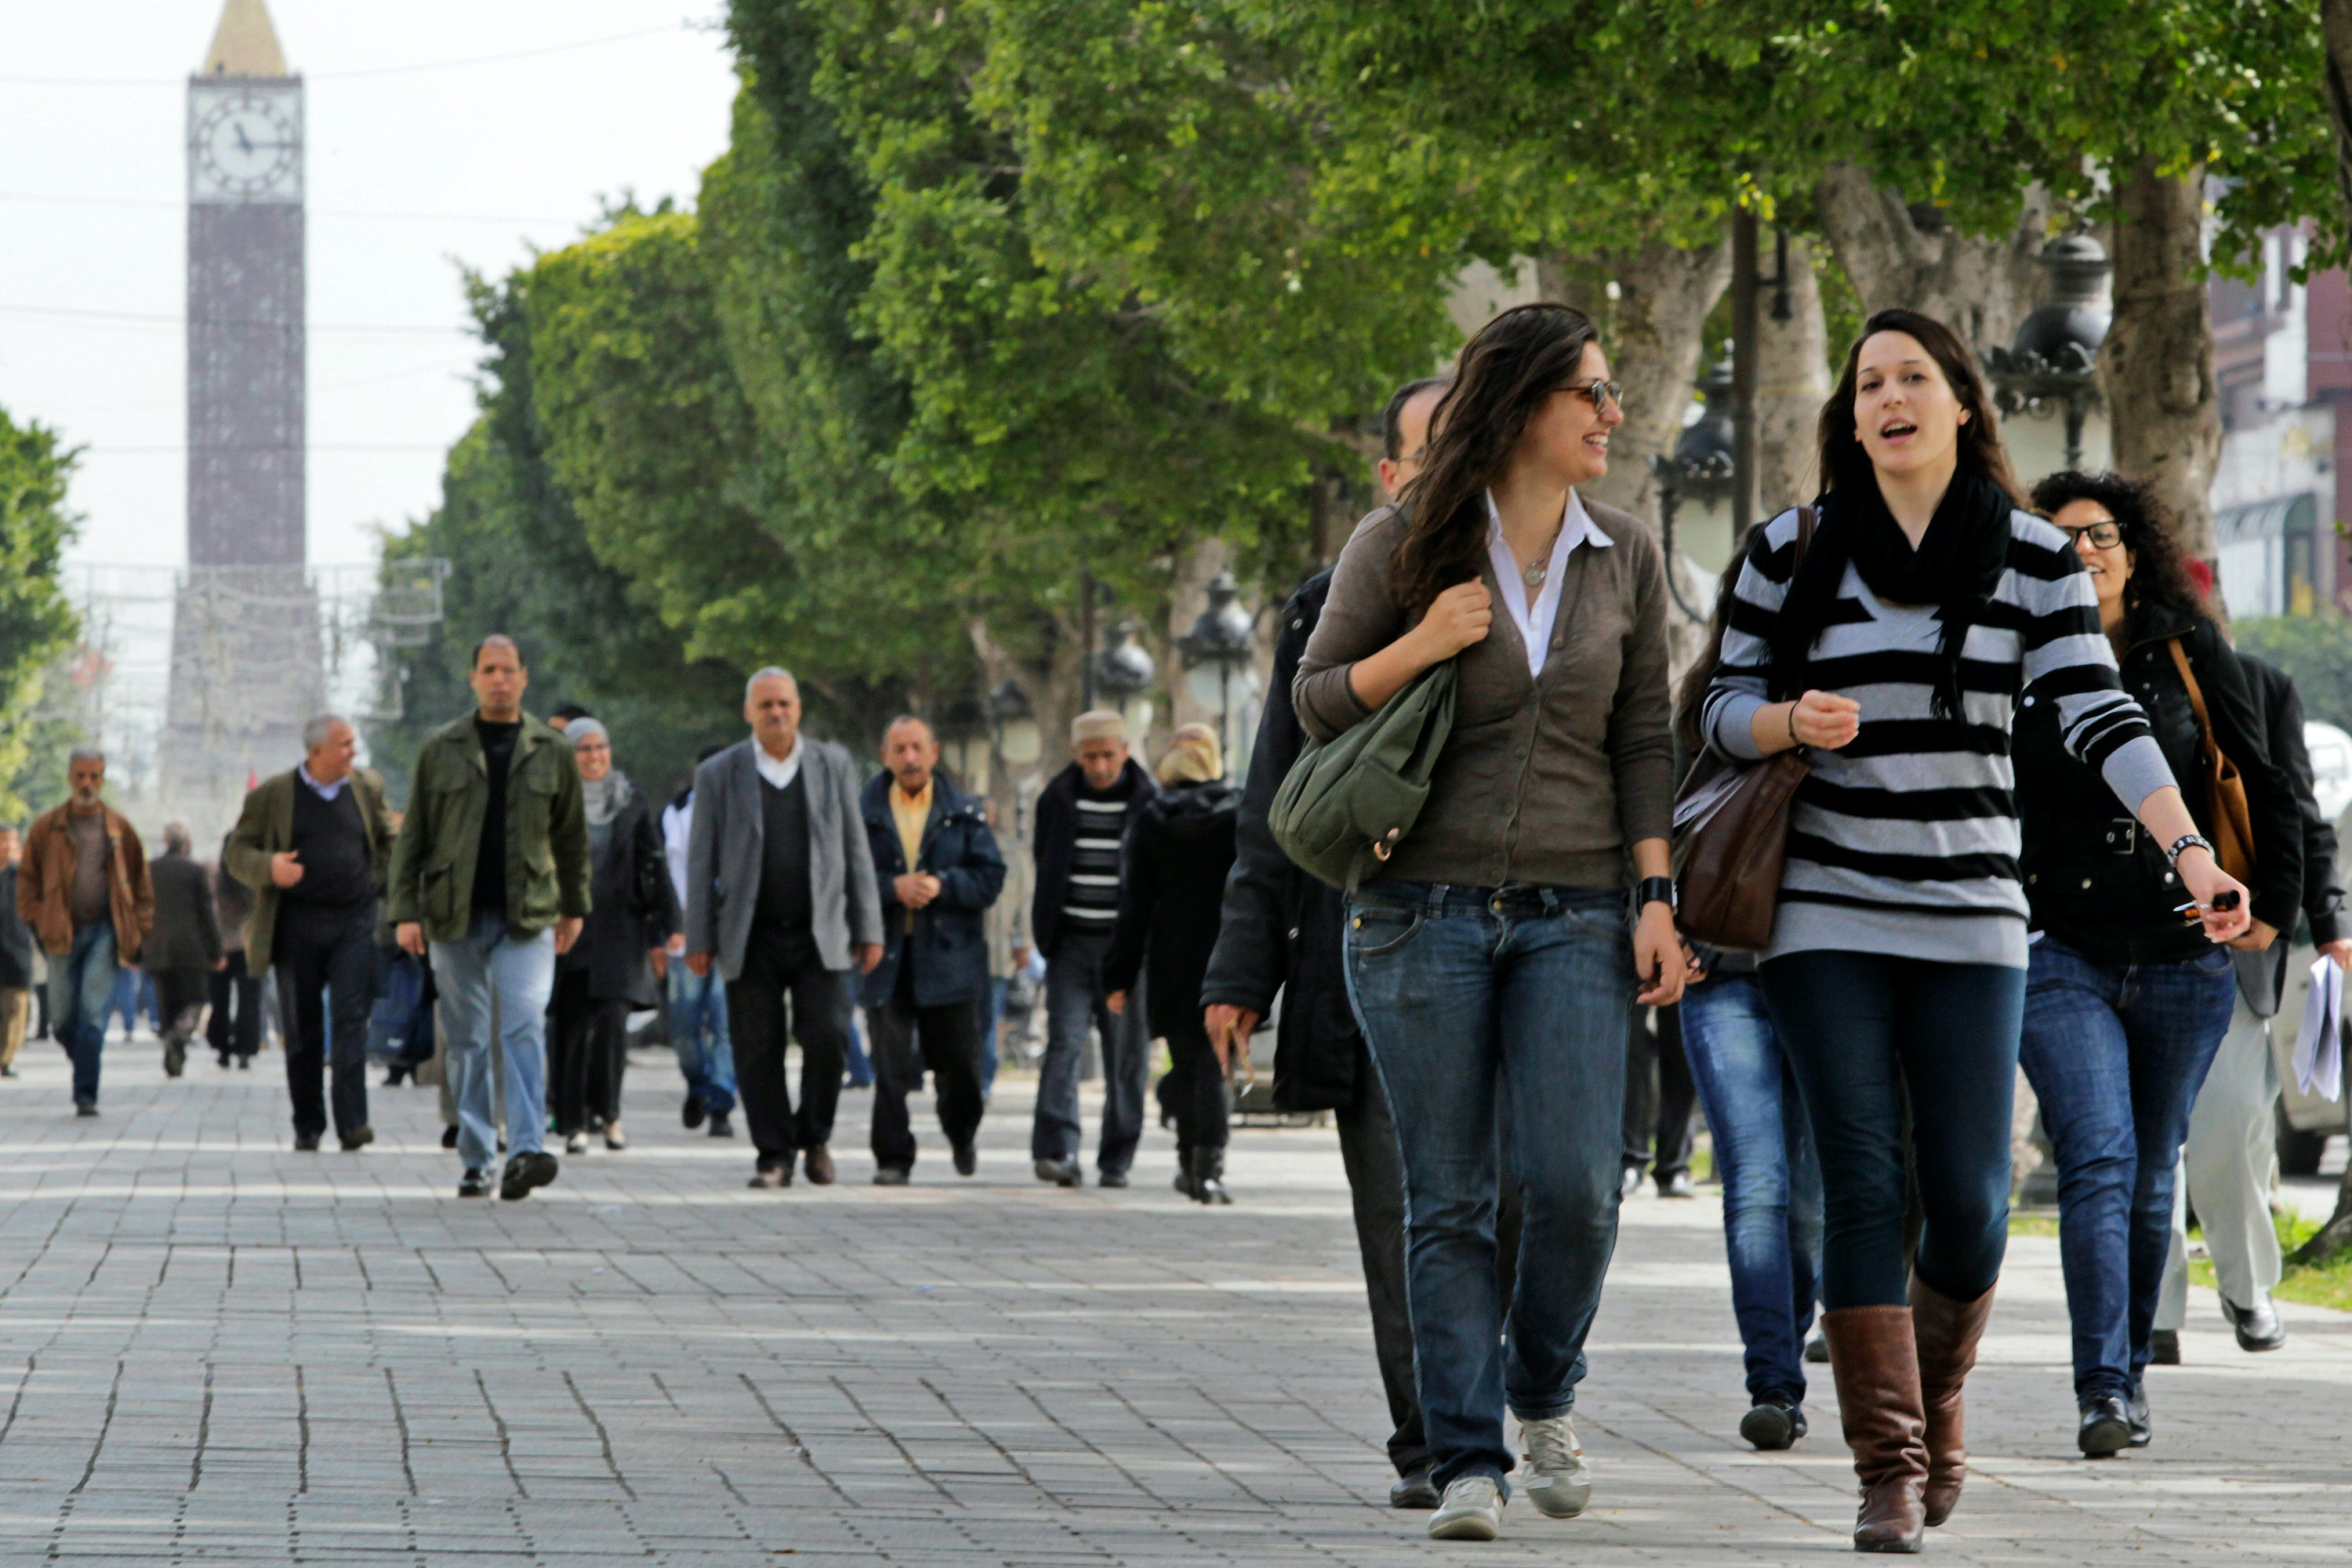 People walking on a shaded pedestrian area.